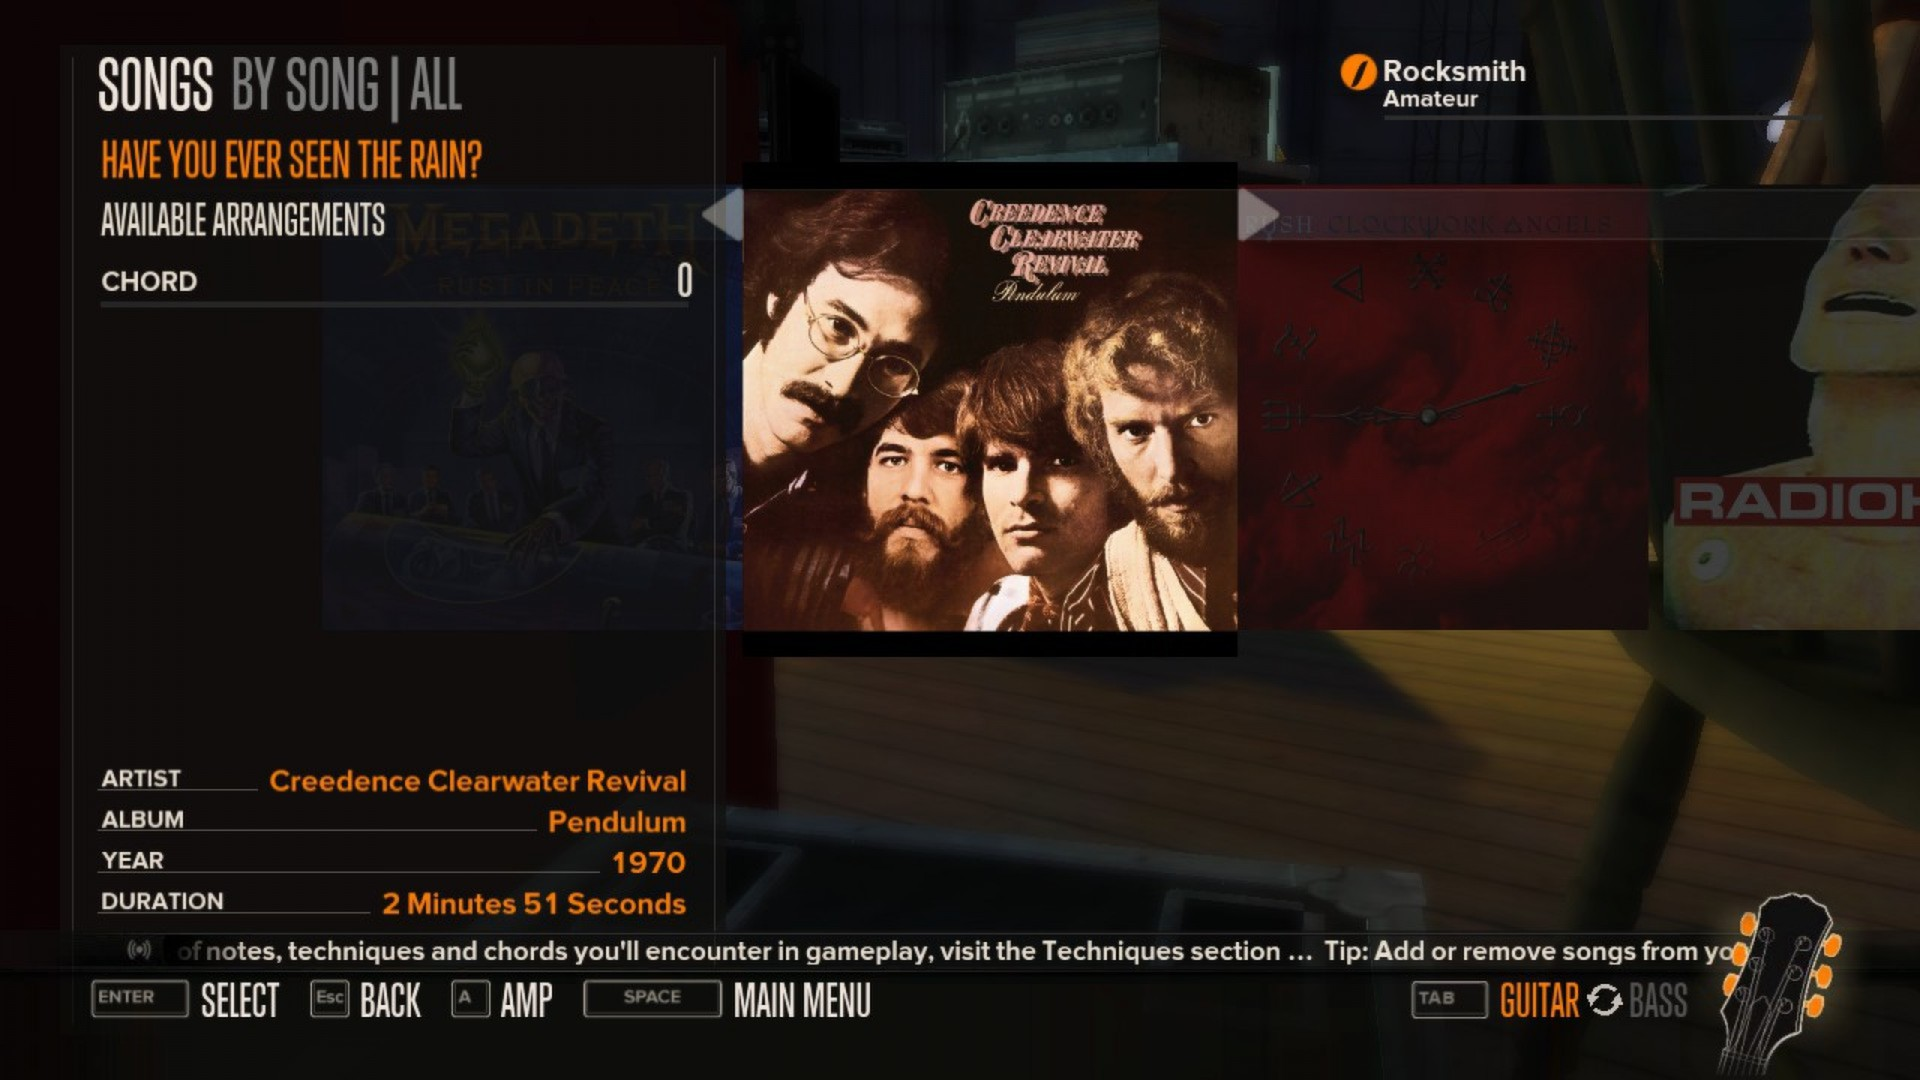 Rocksmith Creedence Clearwater Revival Have You Ever Seen The